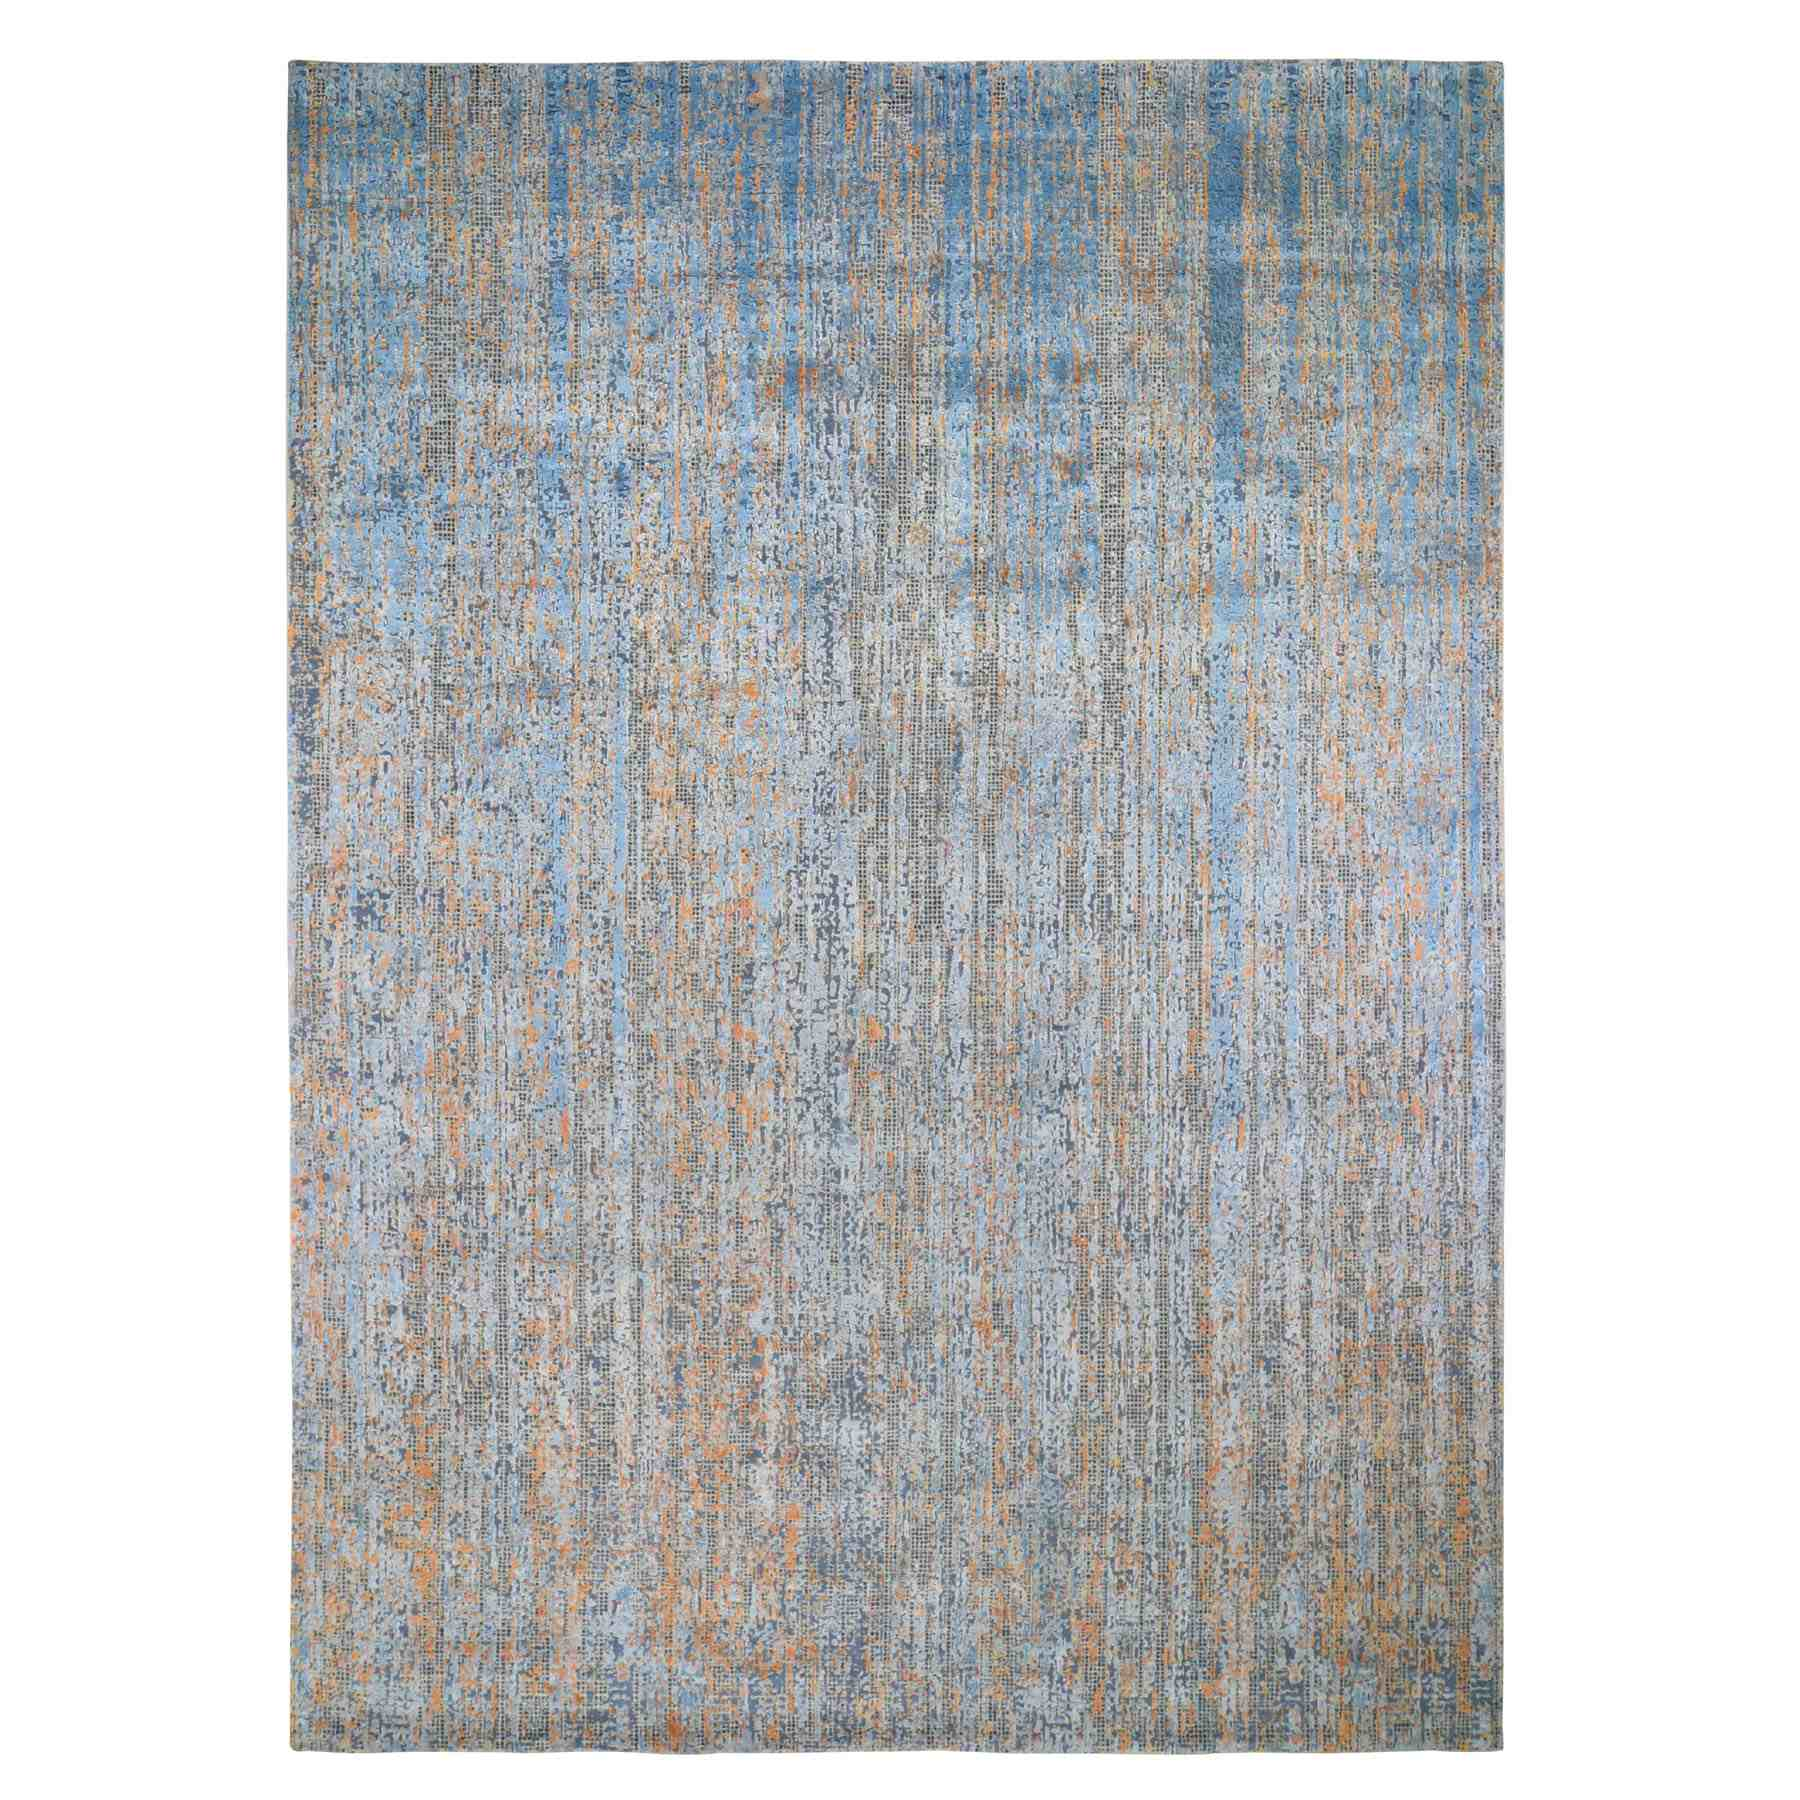 Modern-and-Contemporary-Hand-Knotted-Rug-245385